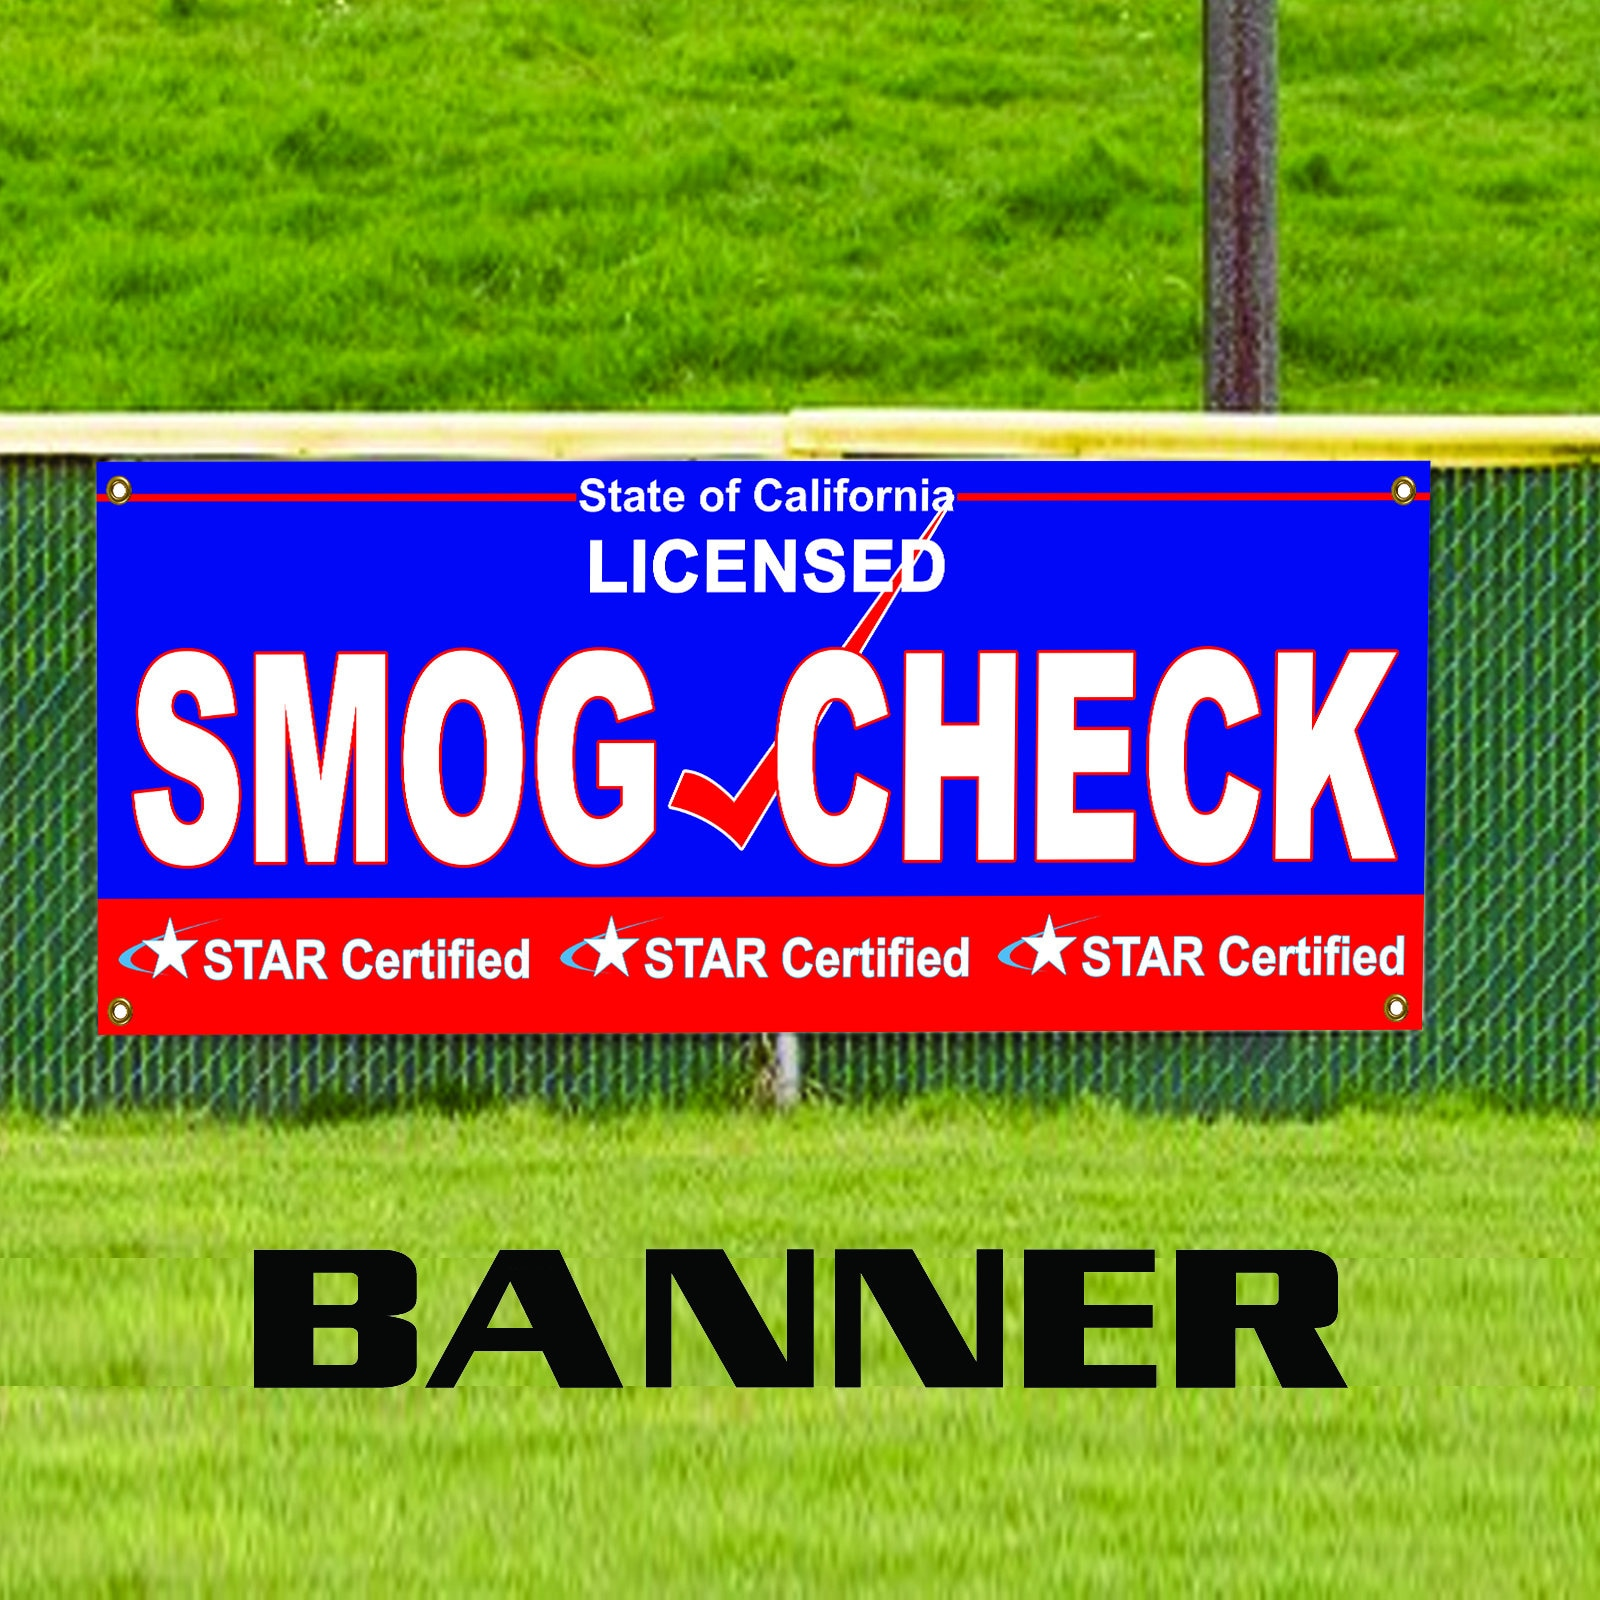 Smog Check Licensed State Of California Star Certified Banner Etsy